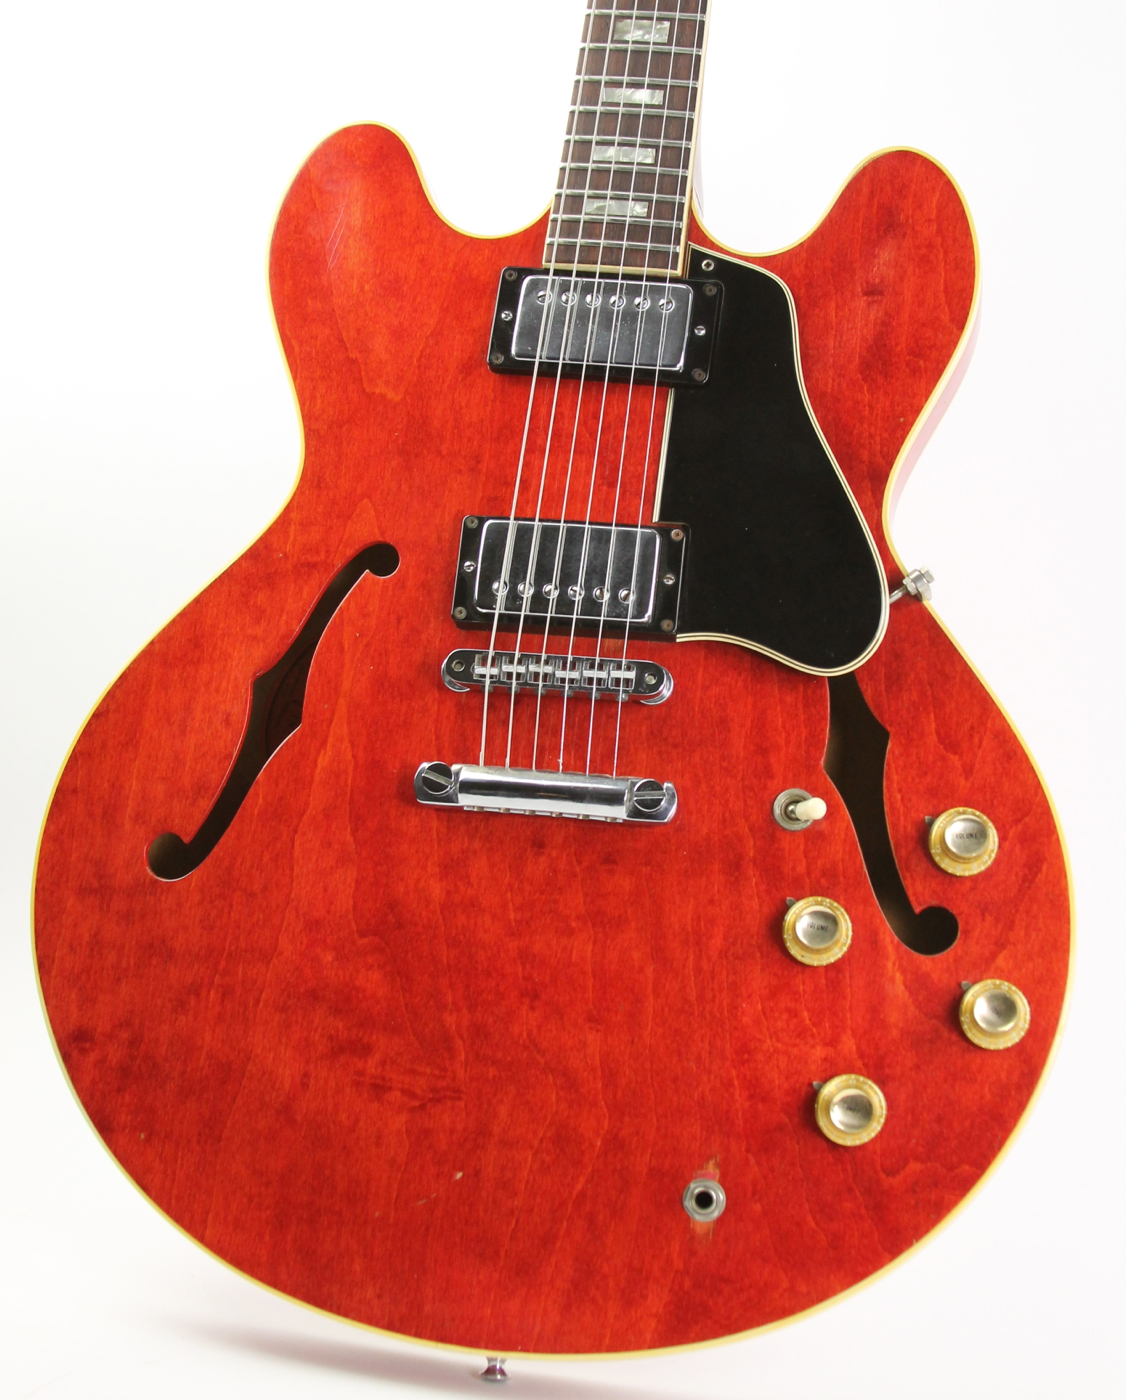 1968 Gibson Es 335 Cherry Guitars Electric Semi Hollow Body Wiring Harness Thunder Road